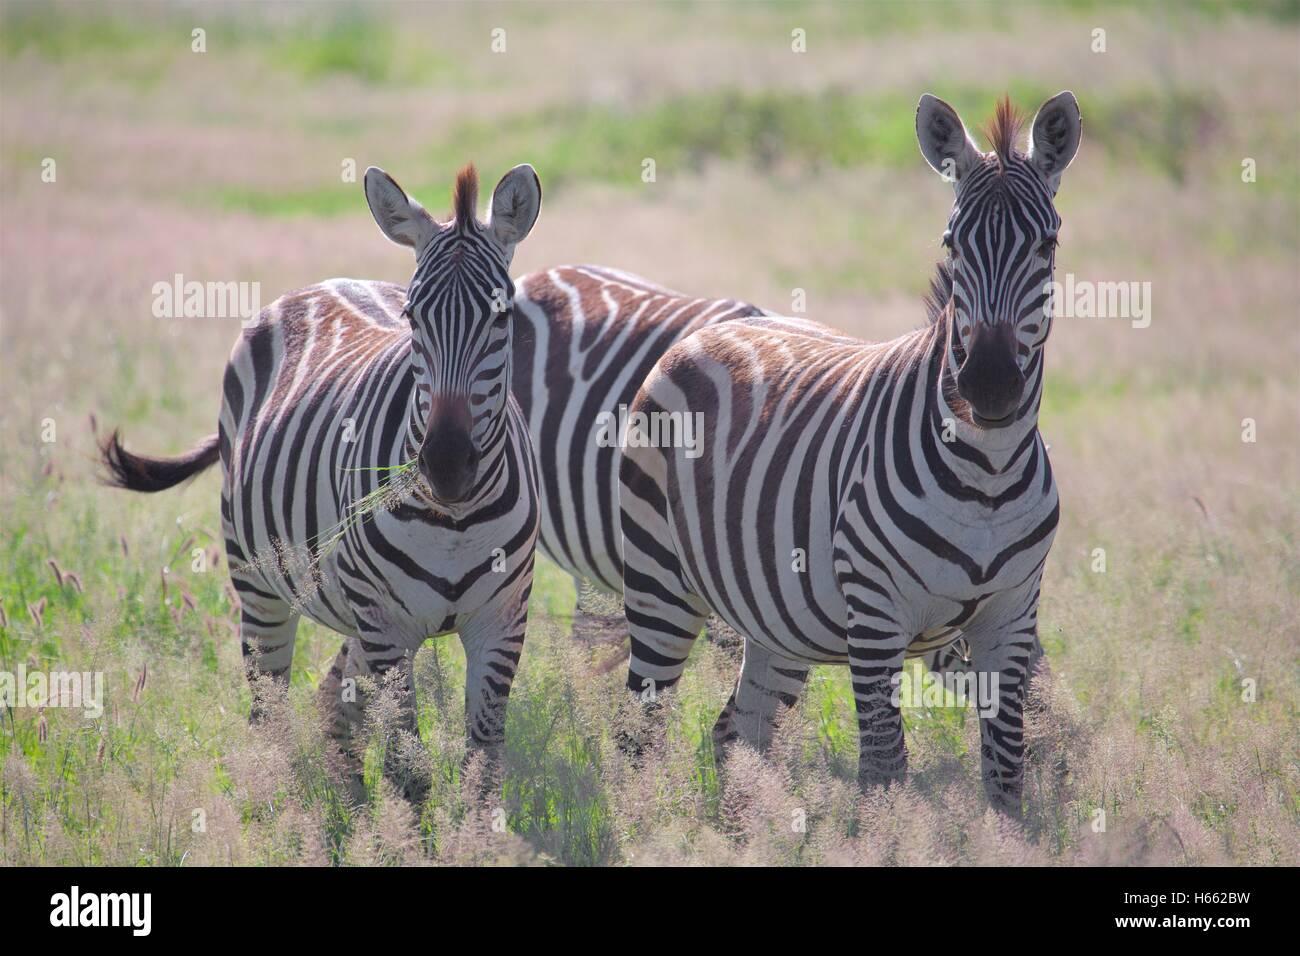 A pair of zebra grazing on safari in Amboseli National Park, Kenya. Stock Photo